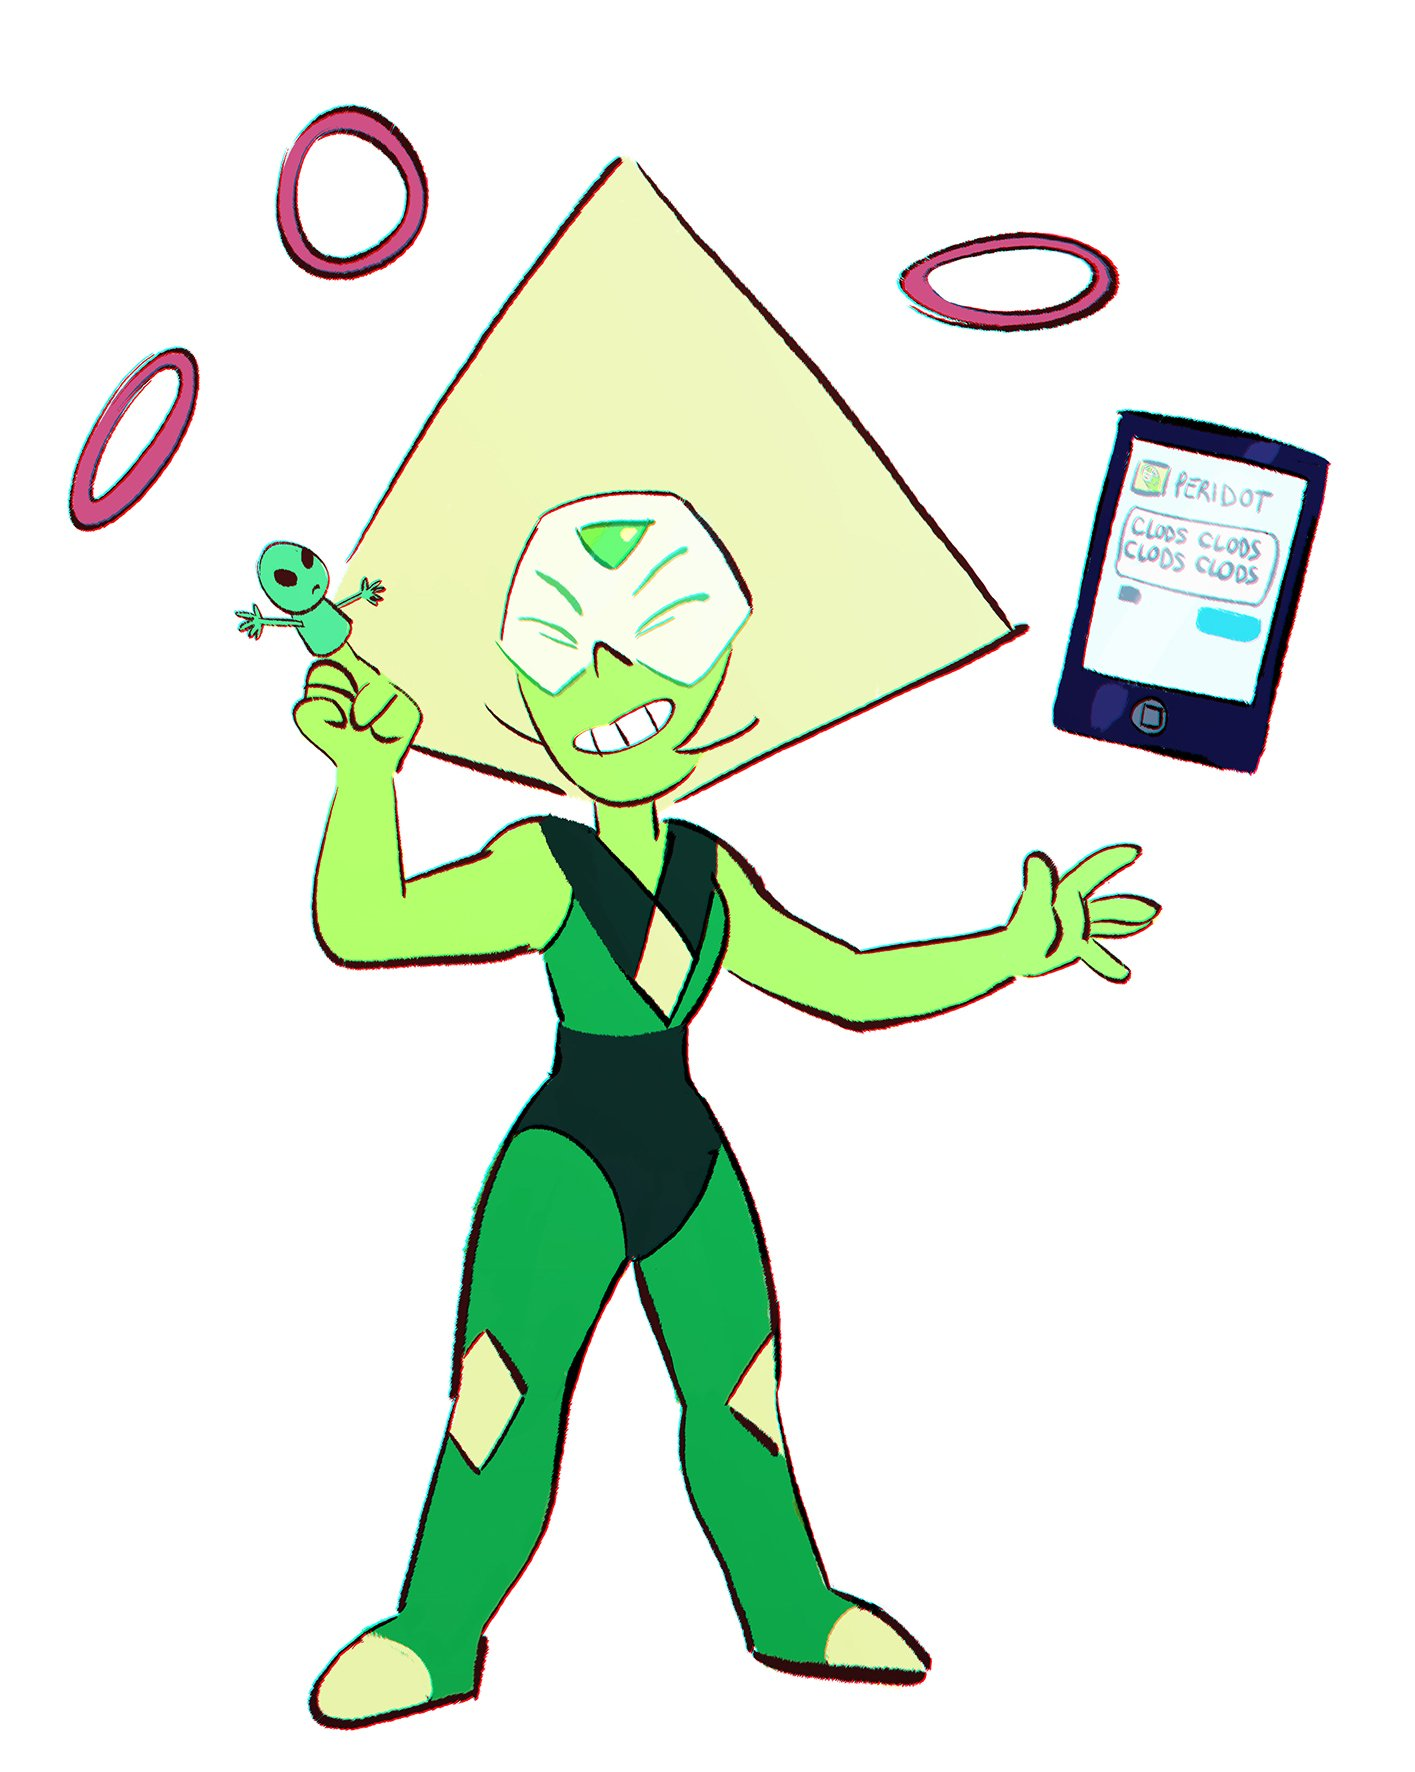 """I LOVE YOU, CLOD @PERIDOT5XG"""